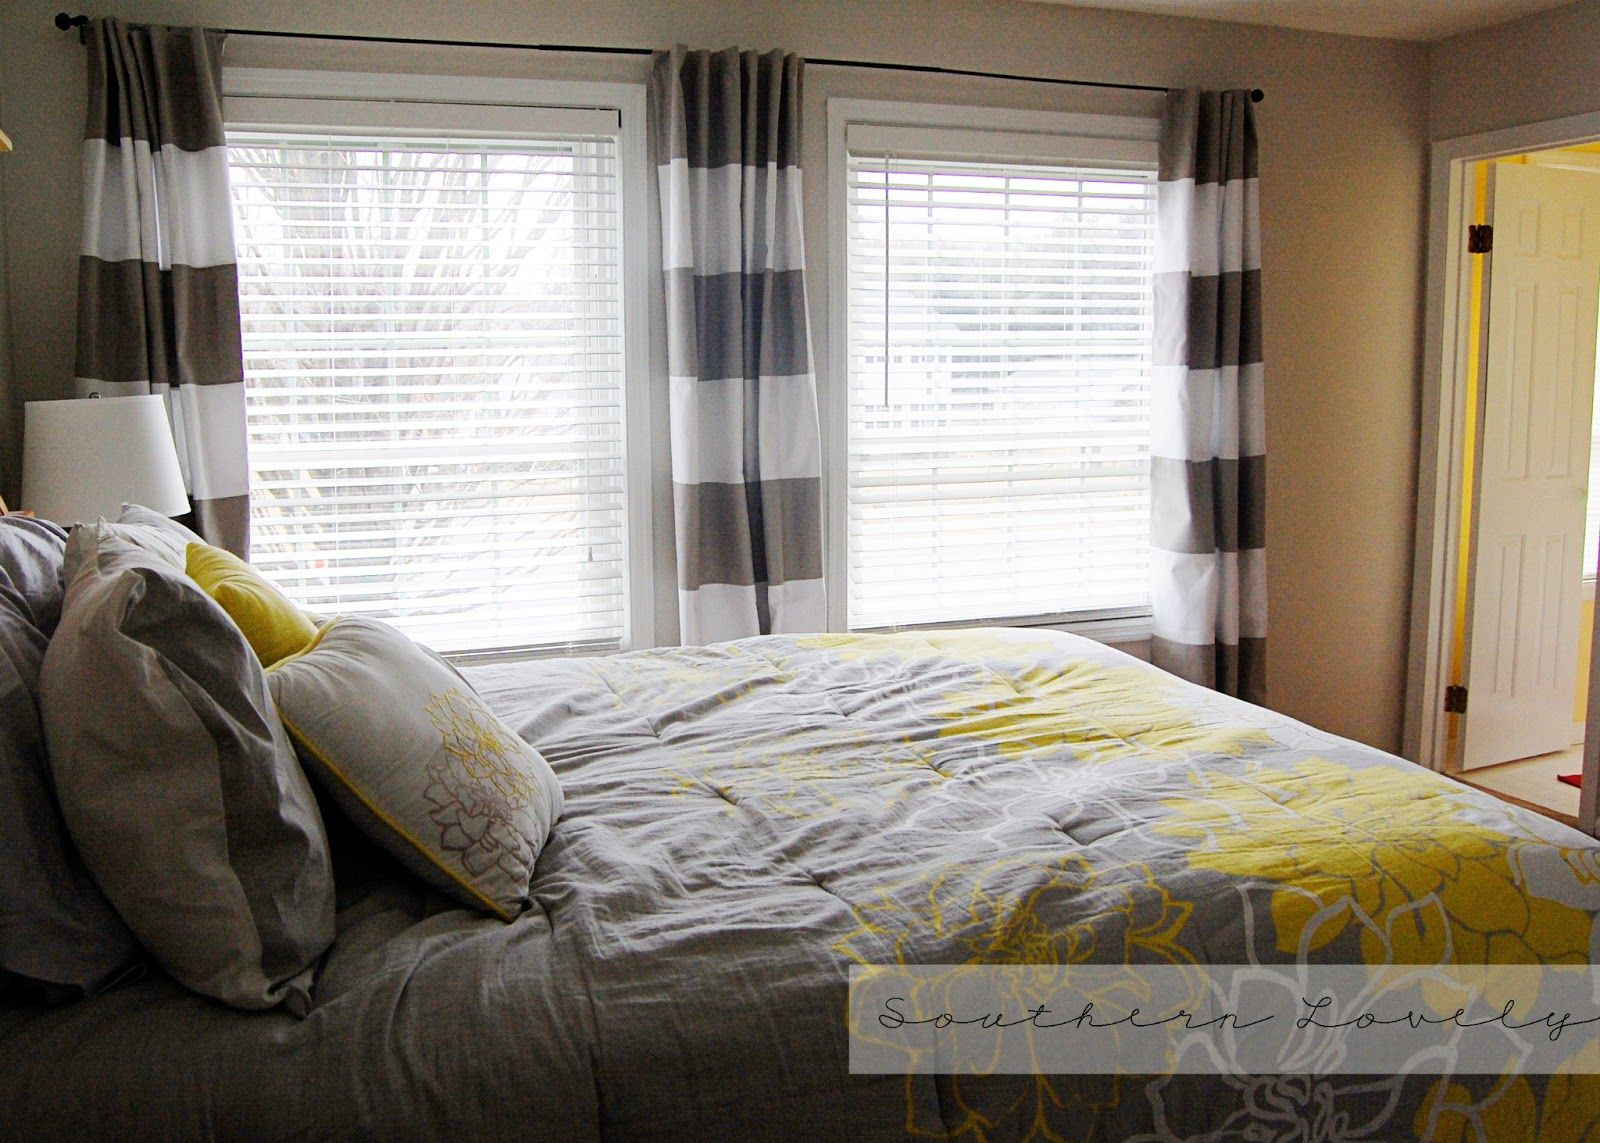 Southern Lovely: DIY {Striped & Lined} Curtains